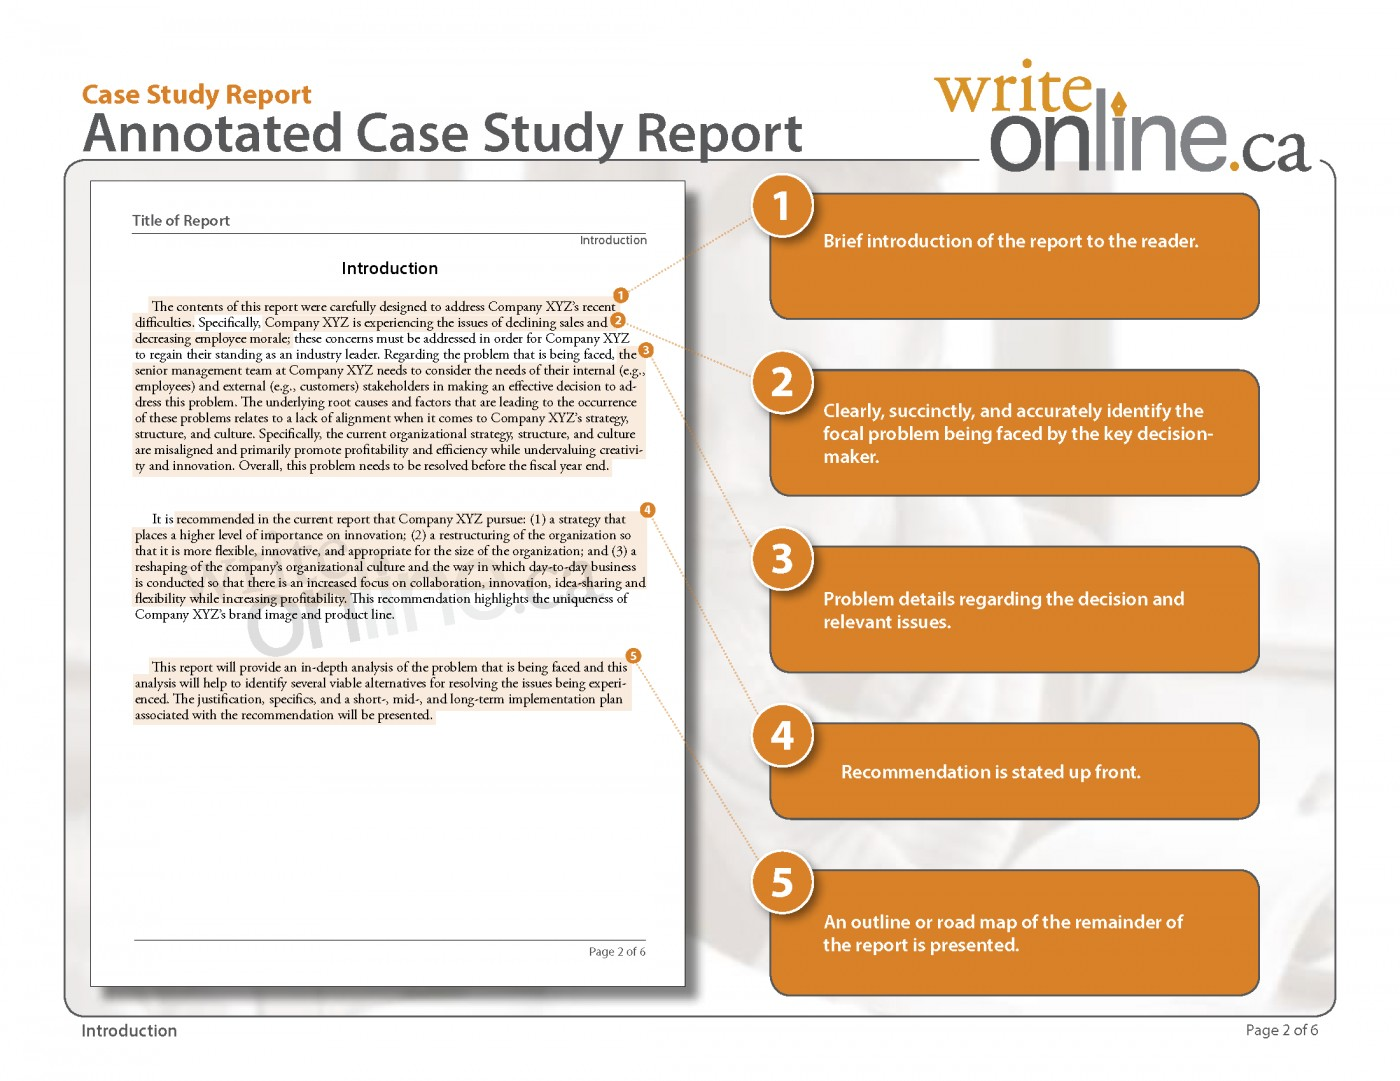 017 Casestudy Annotatedfull Page 2 Parts Of Research Paper High Shocking A School For Students 1400